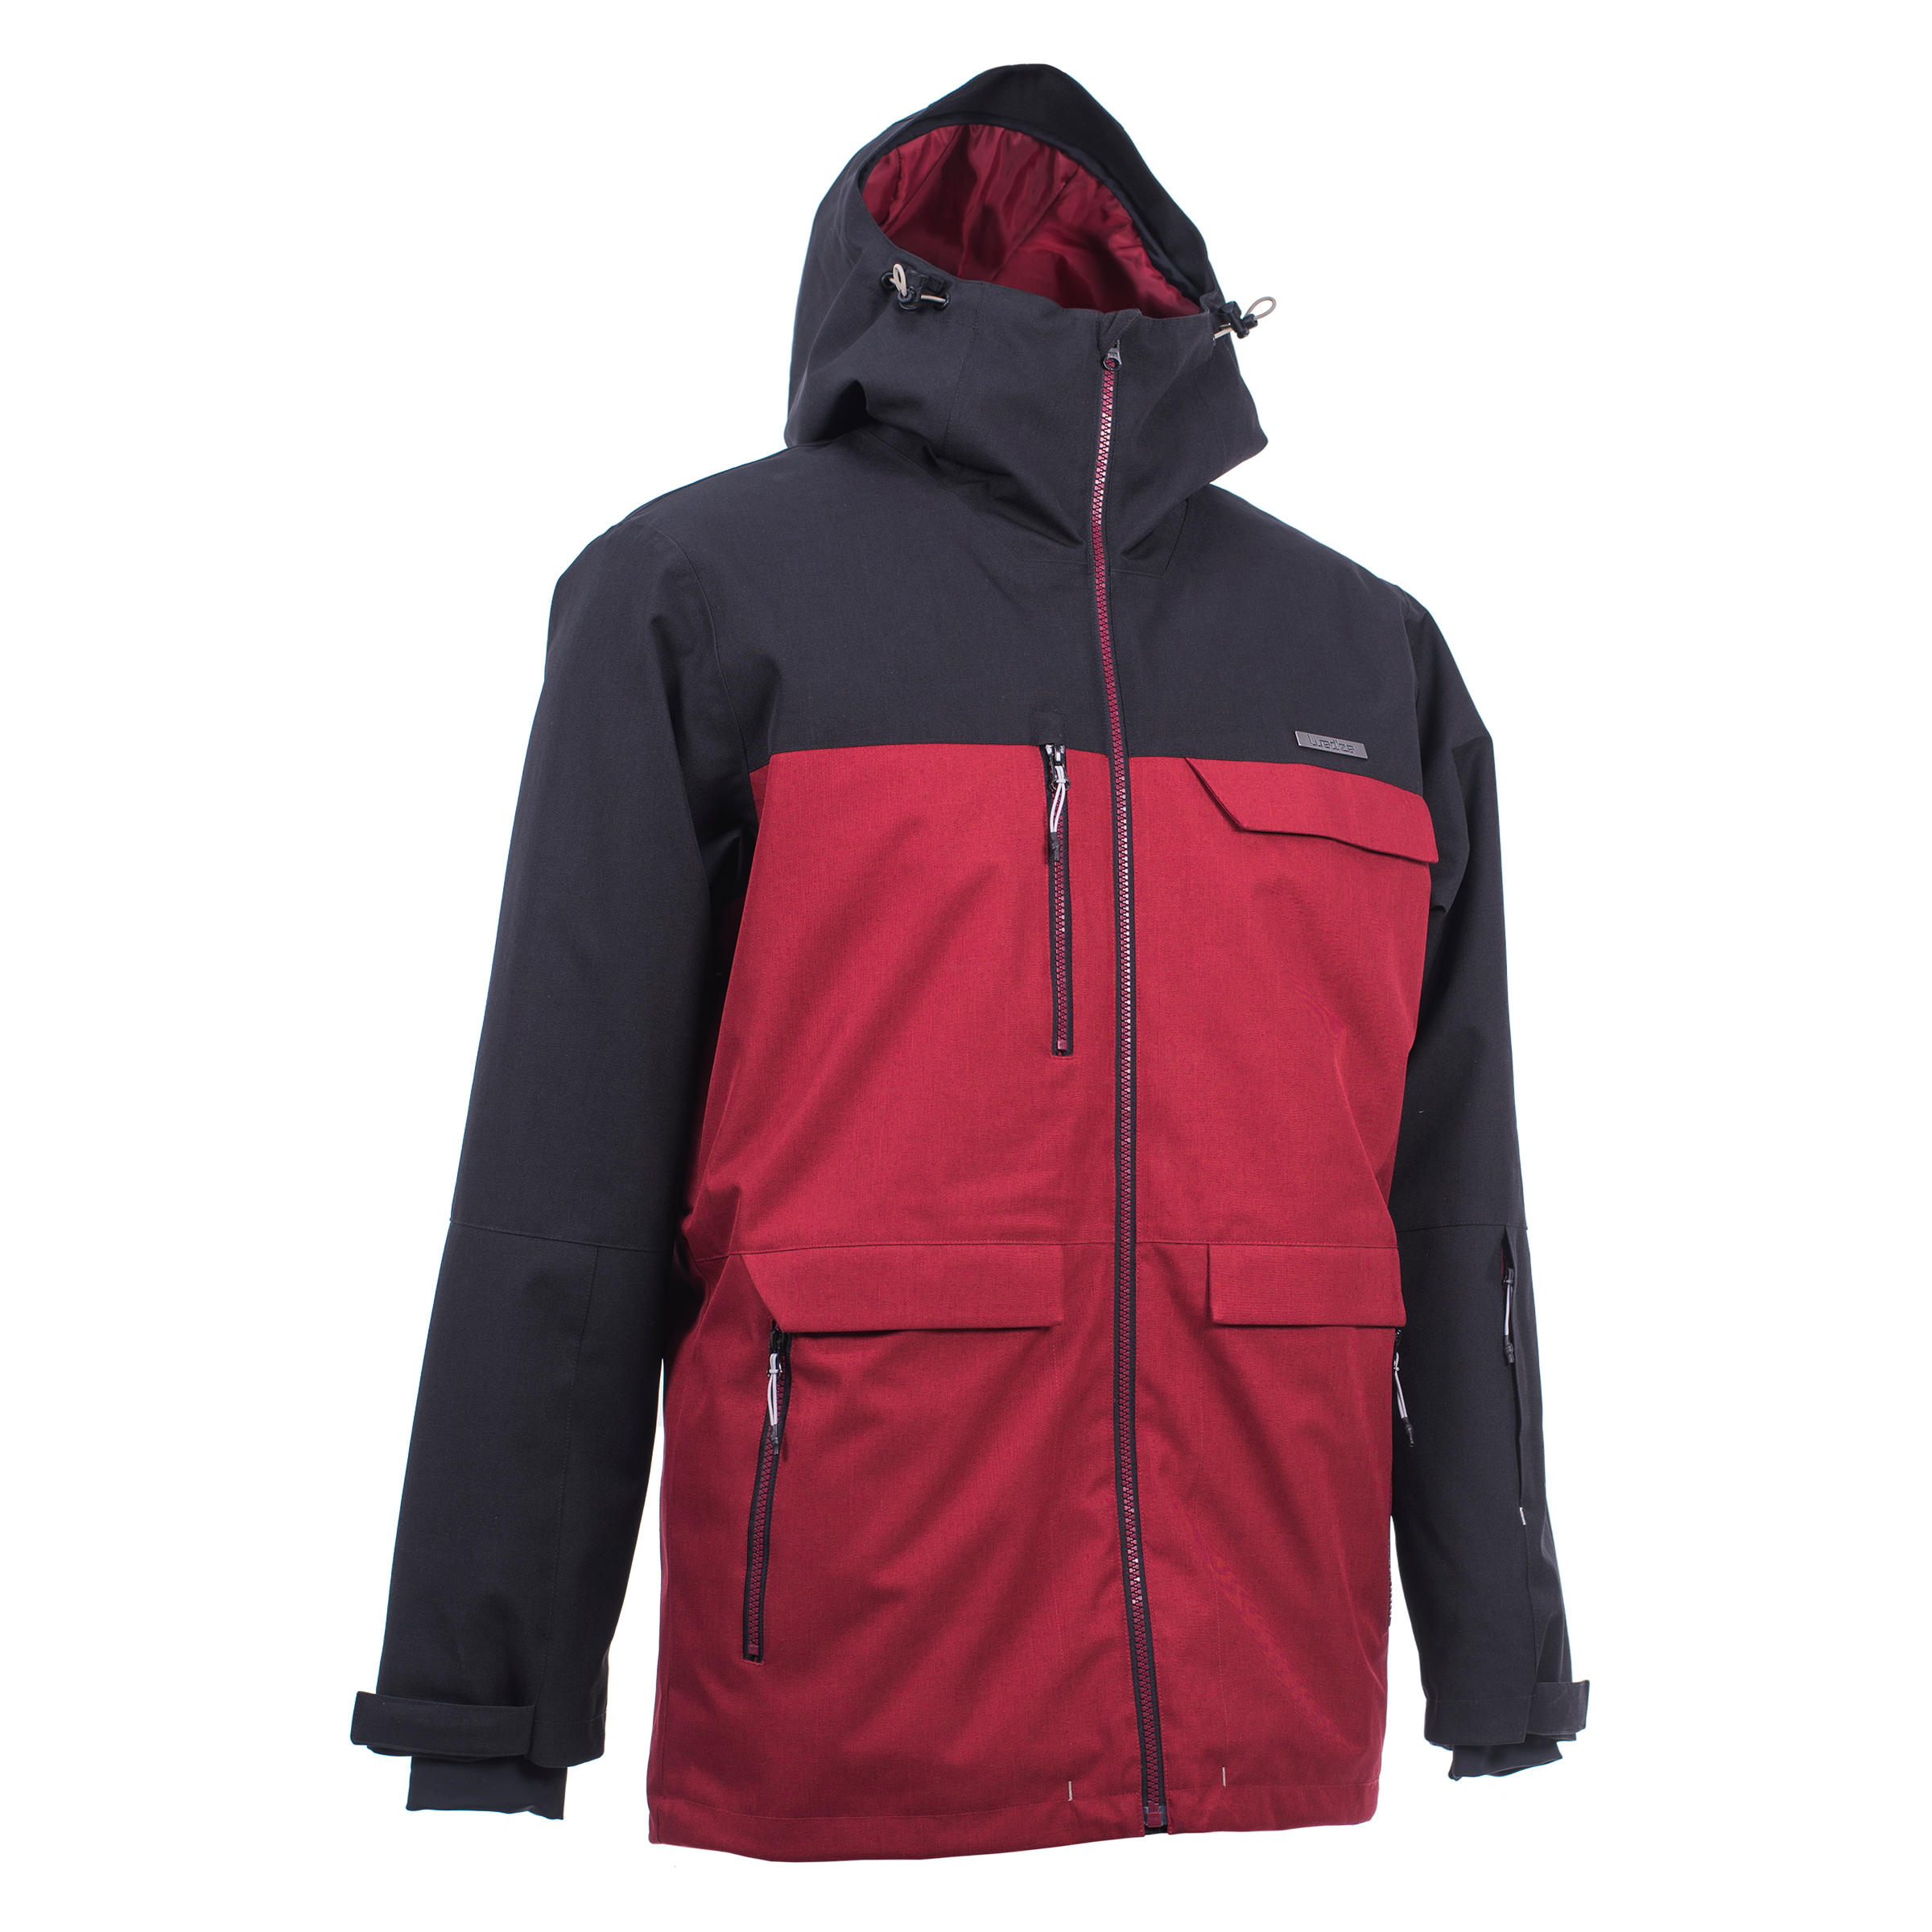 SNB JKT 500 Men's Ski and Snowboard Jacket - Maroon and Black